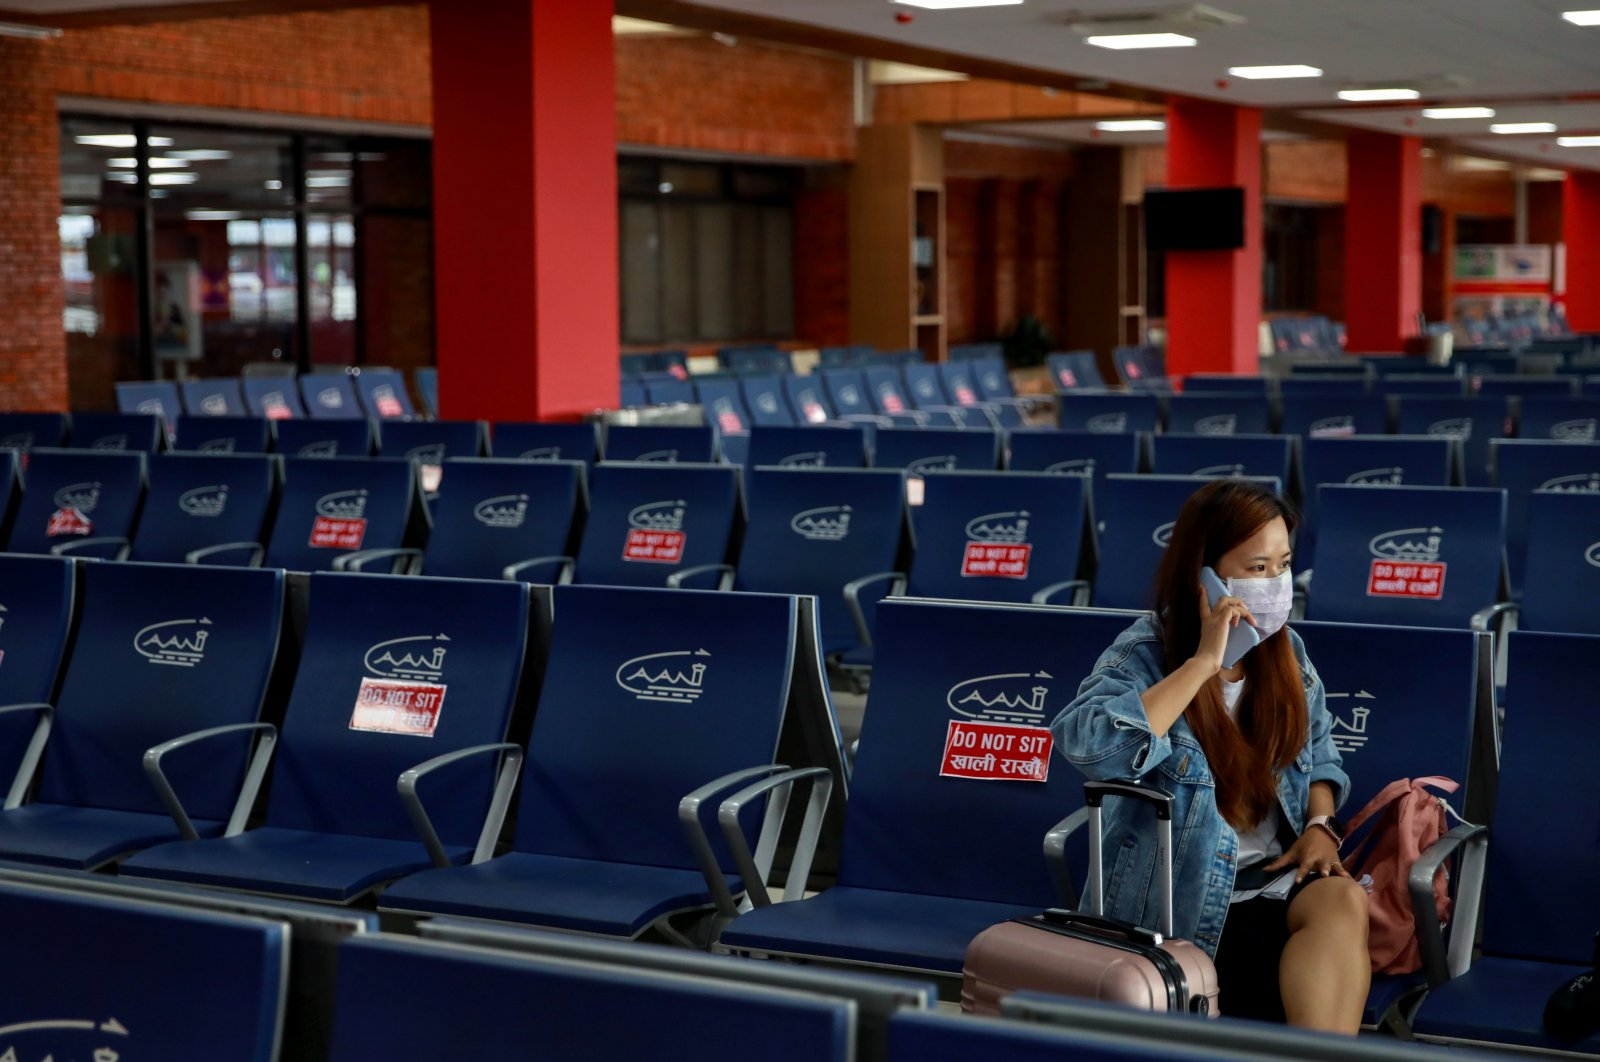 A passenger waits to board her flight at Tribhuvan International Airport after it reopened with limited international flights amid the spread of COVID-19, in Kathmandu, Nepal, Sept. 2, 2020. (Reuters Photo)